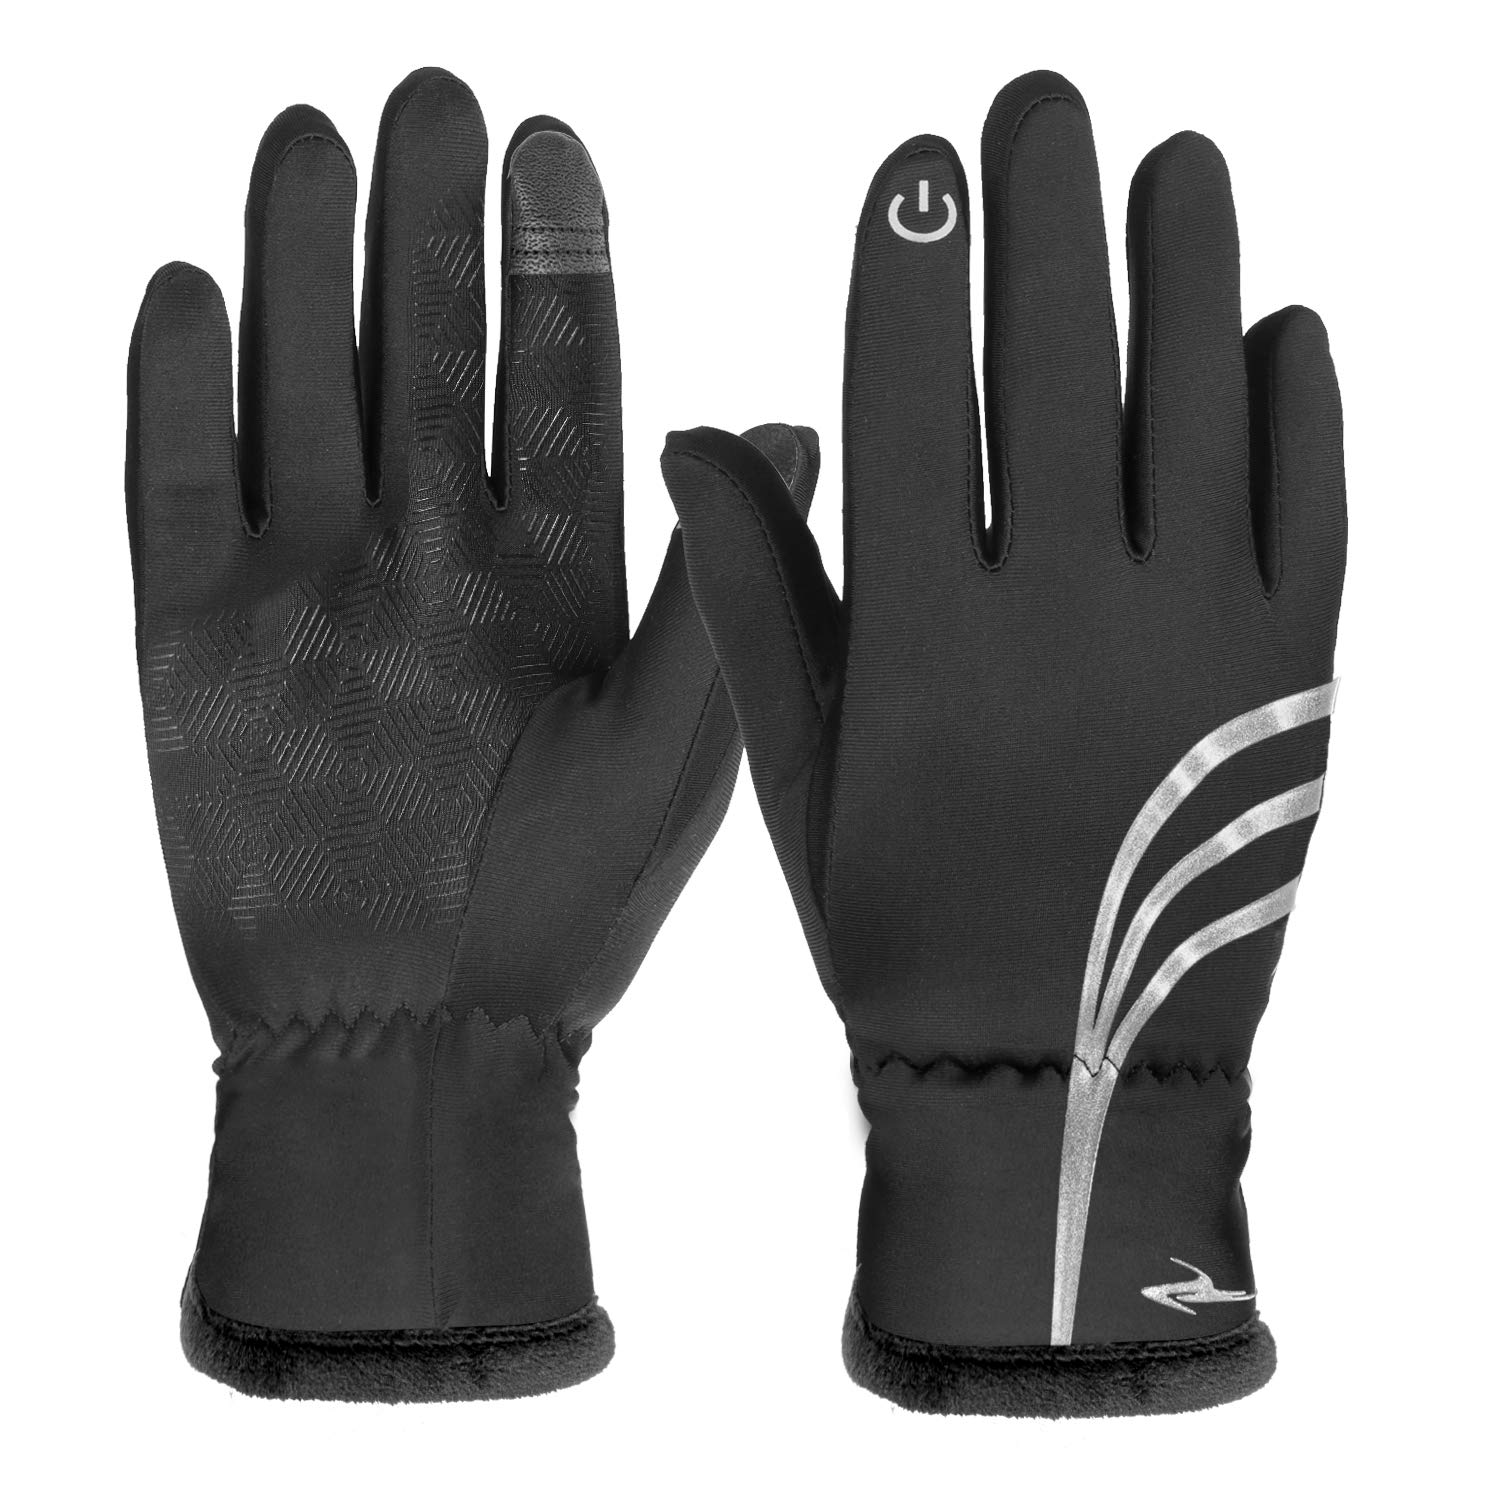 HiCool Winter Gloves for Men Touch Screen Gloves Warm Gloves Running Cycling Gloves